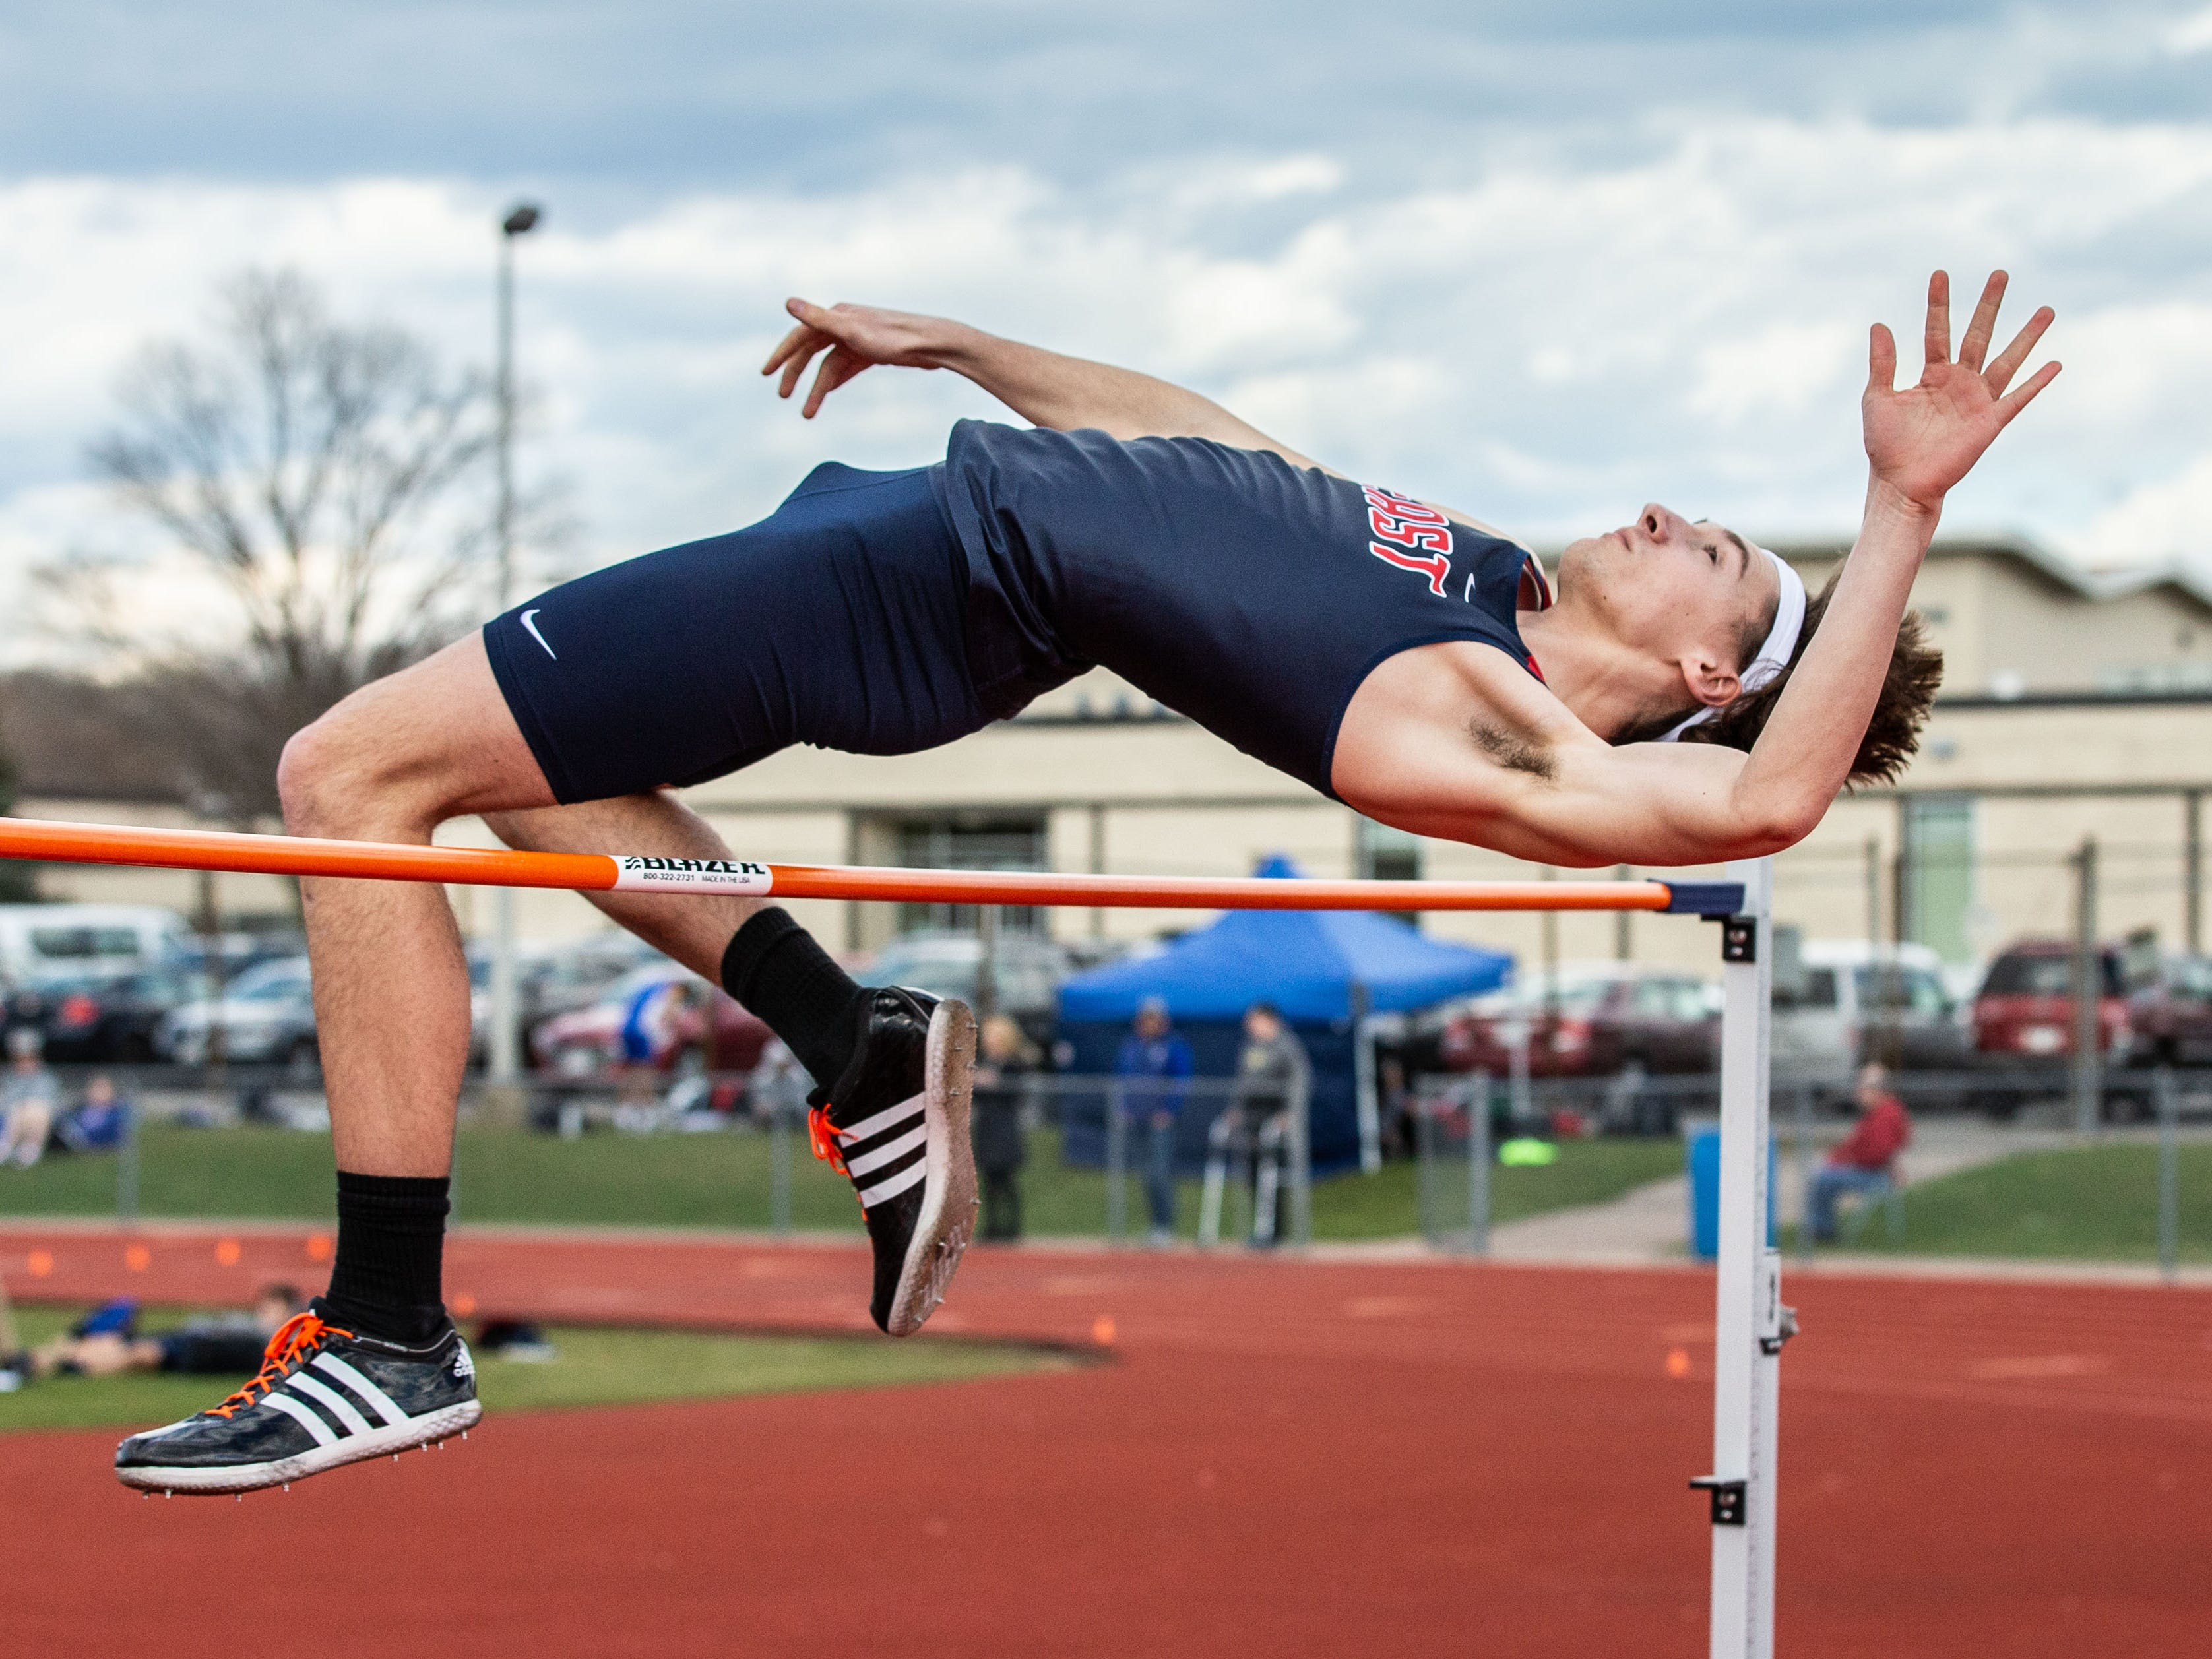 Brookfield East's Jon Szews competes in the high jump during the Mike Gain 50th Annual Spartan Invitational at Brookfield East on Tuesday, April 9, 2019.